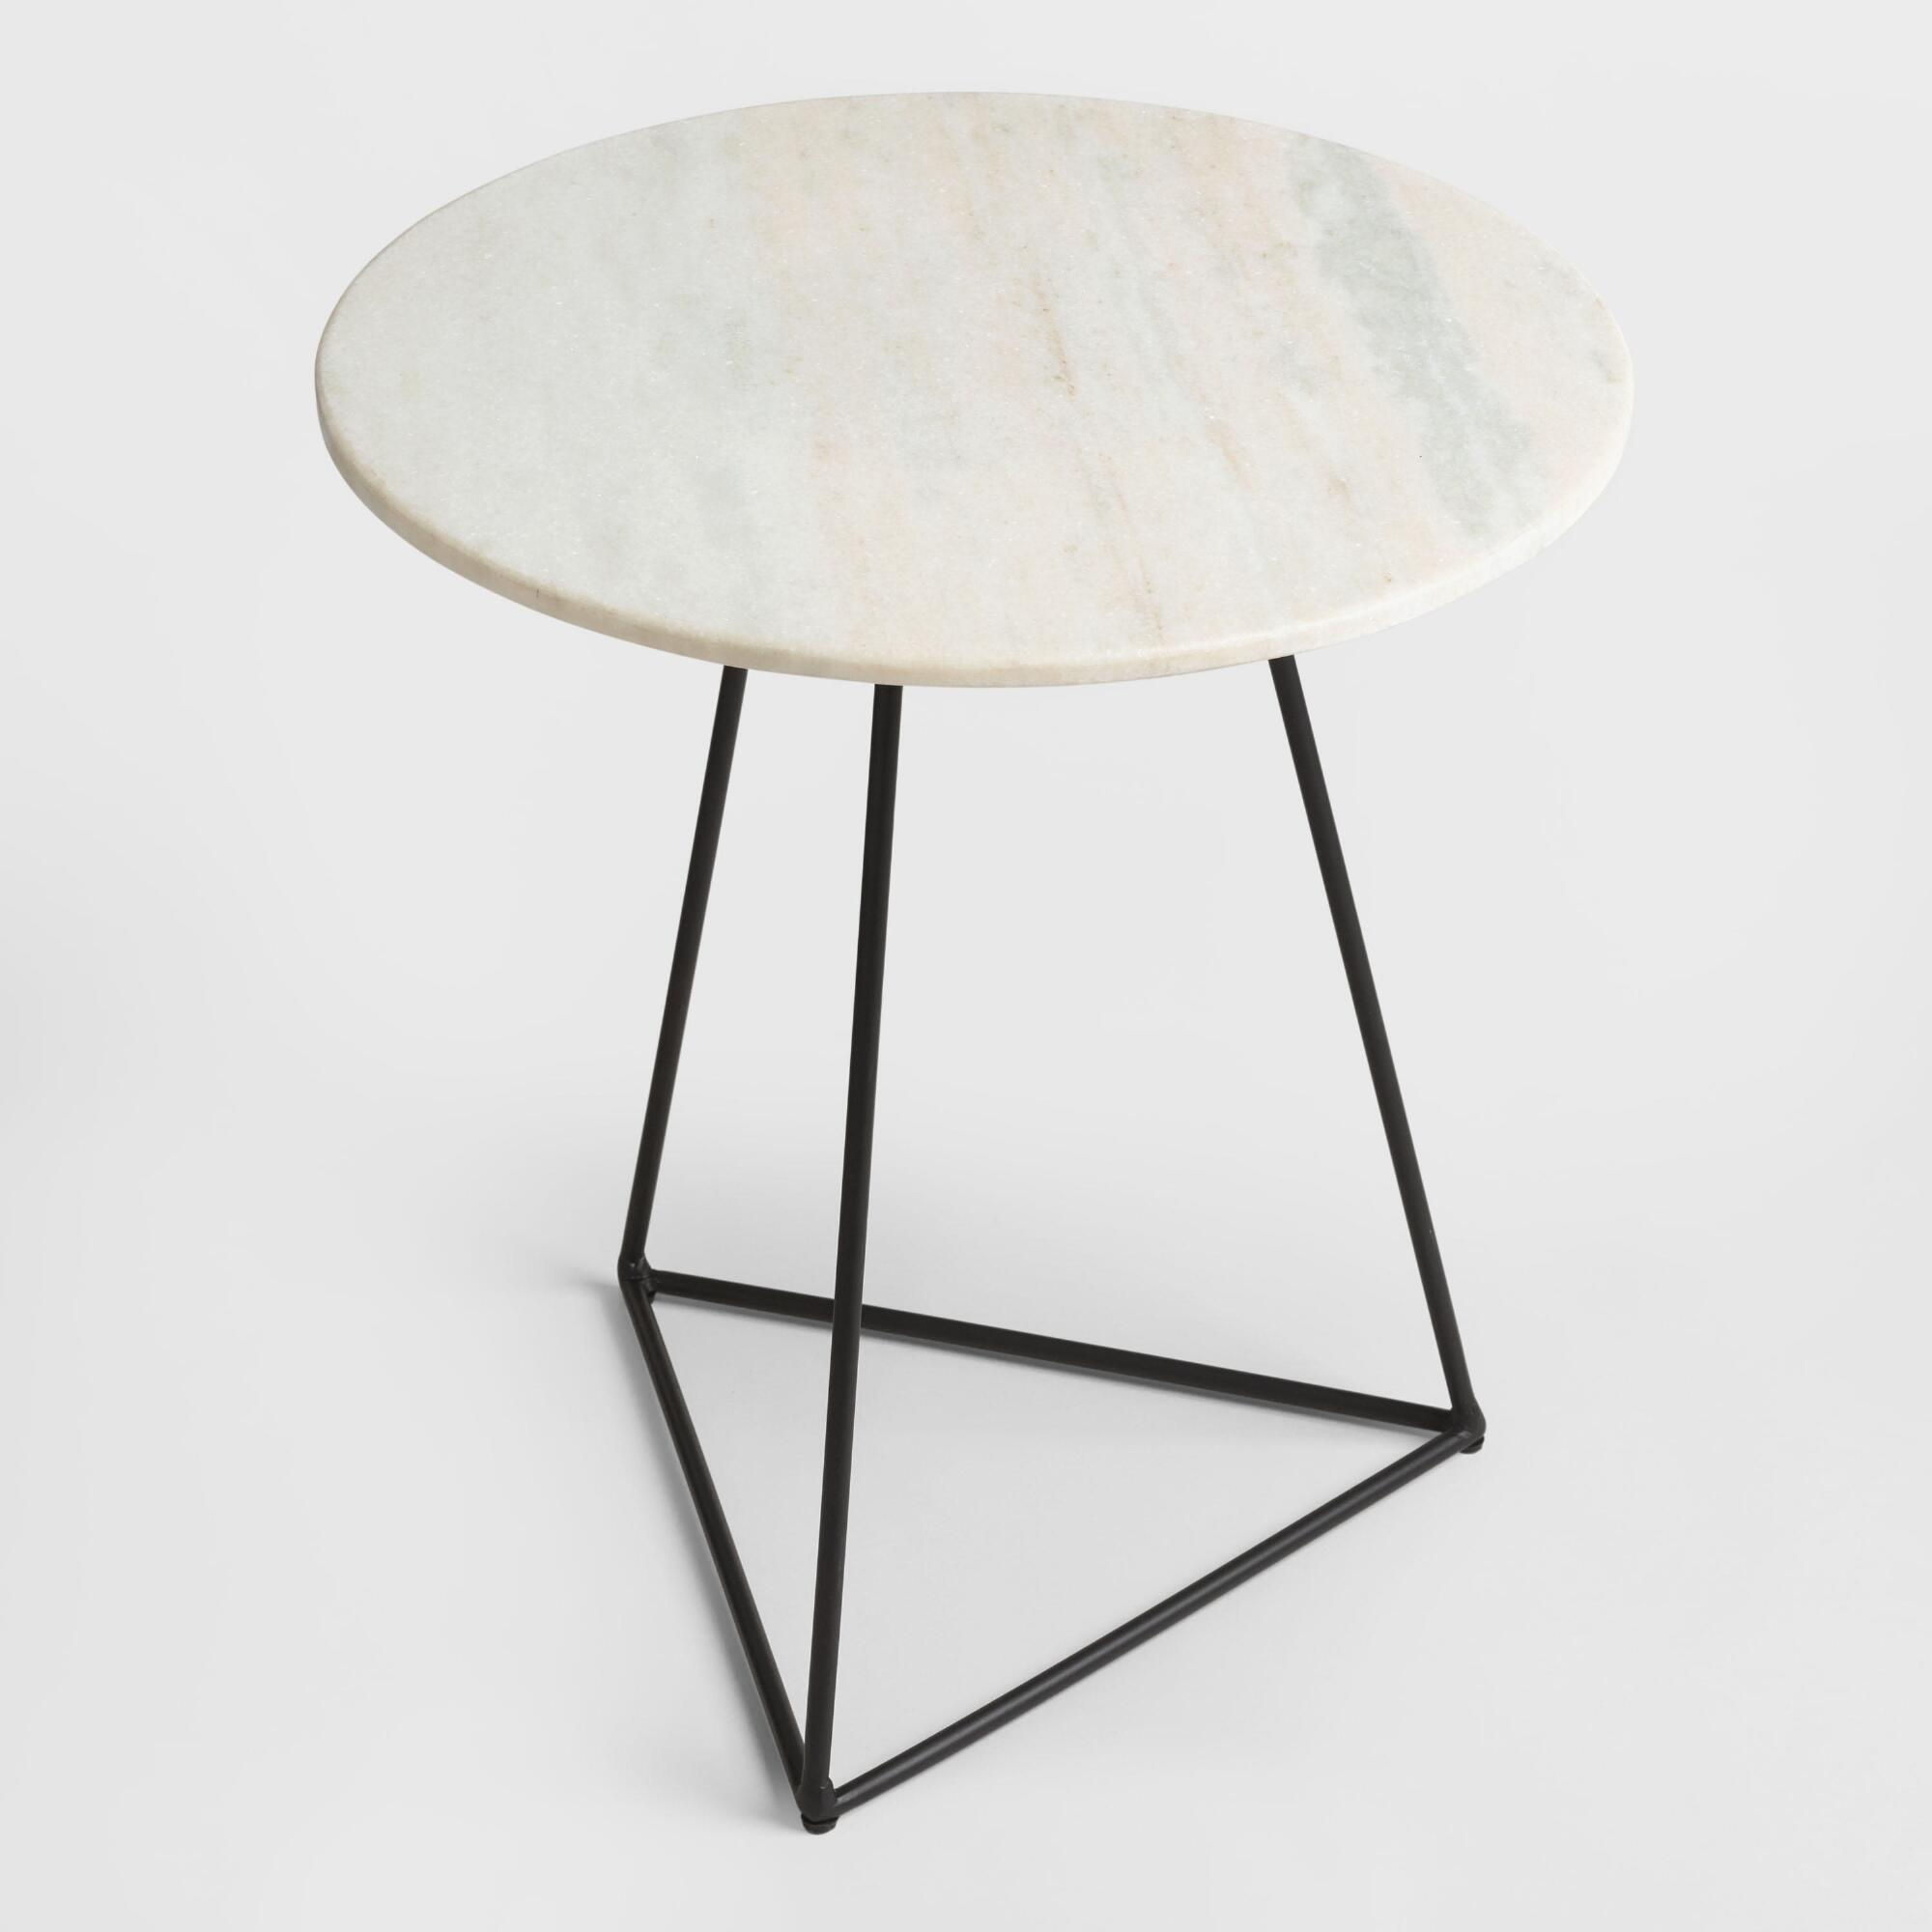 small space coffee side tables world market iipsrv fcgi low height accent table round white marble and metal bar furniture pottery barn pedestal the iron company battery pack for